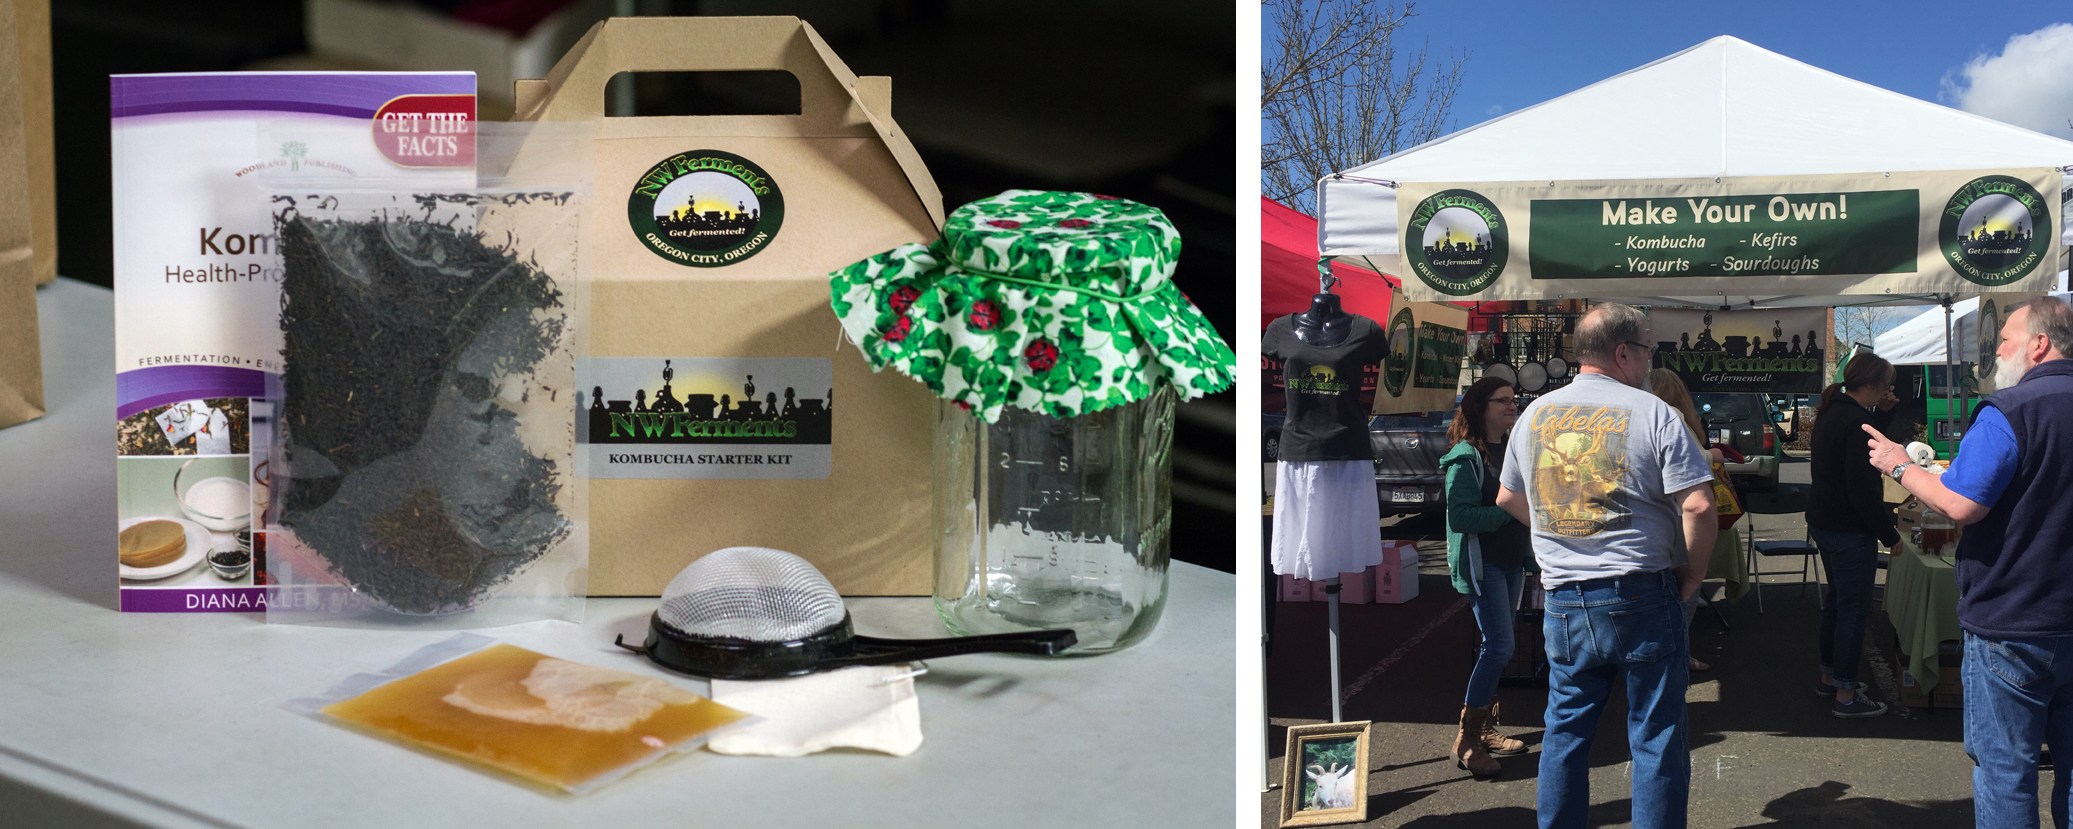 NW Ferments Kombucha starter kit and tent at OC Farmers Market